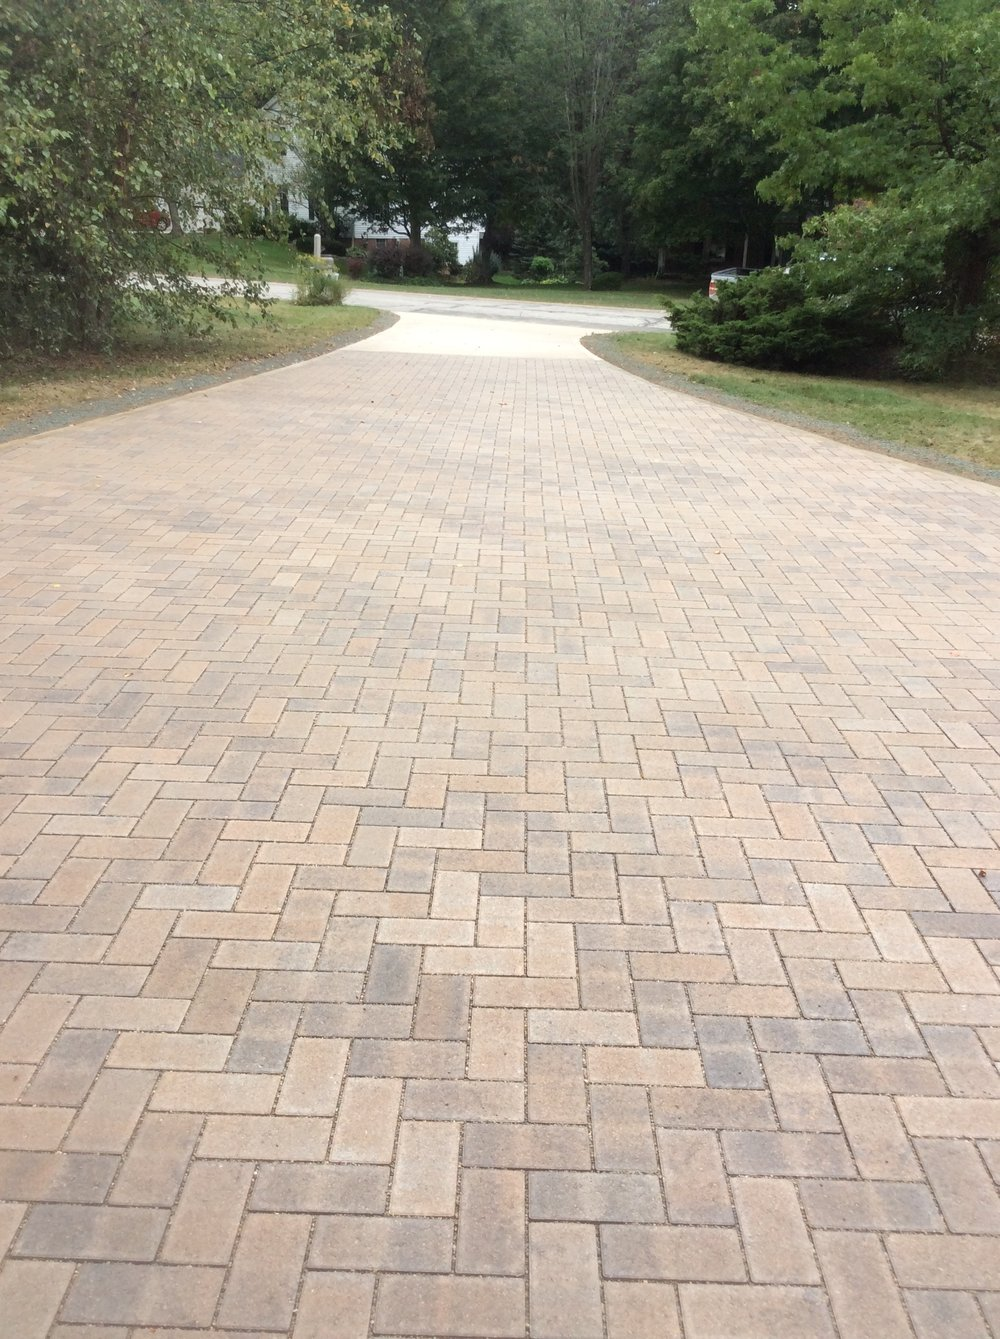 Unilock landscaping companies, driveways and patio pavers in Chagrin Falls, OH